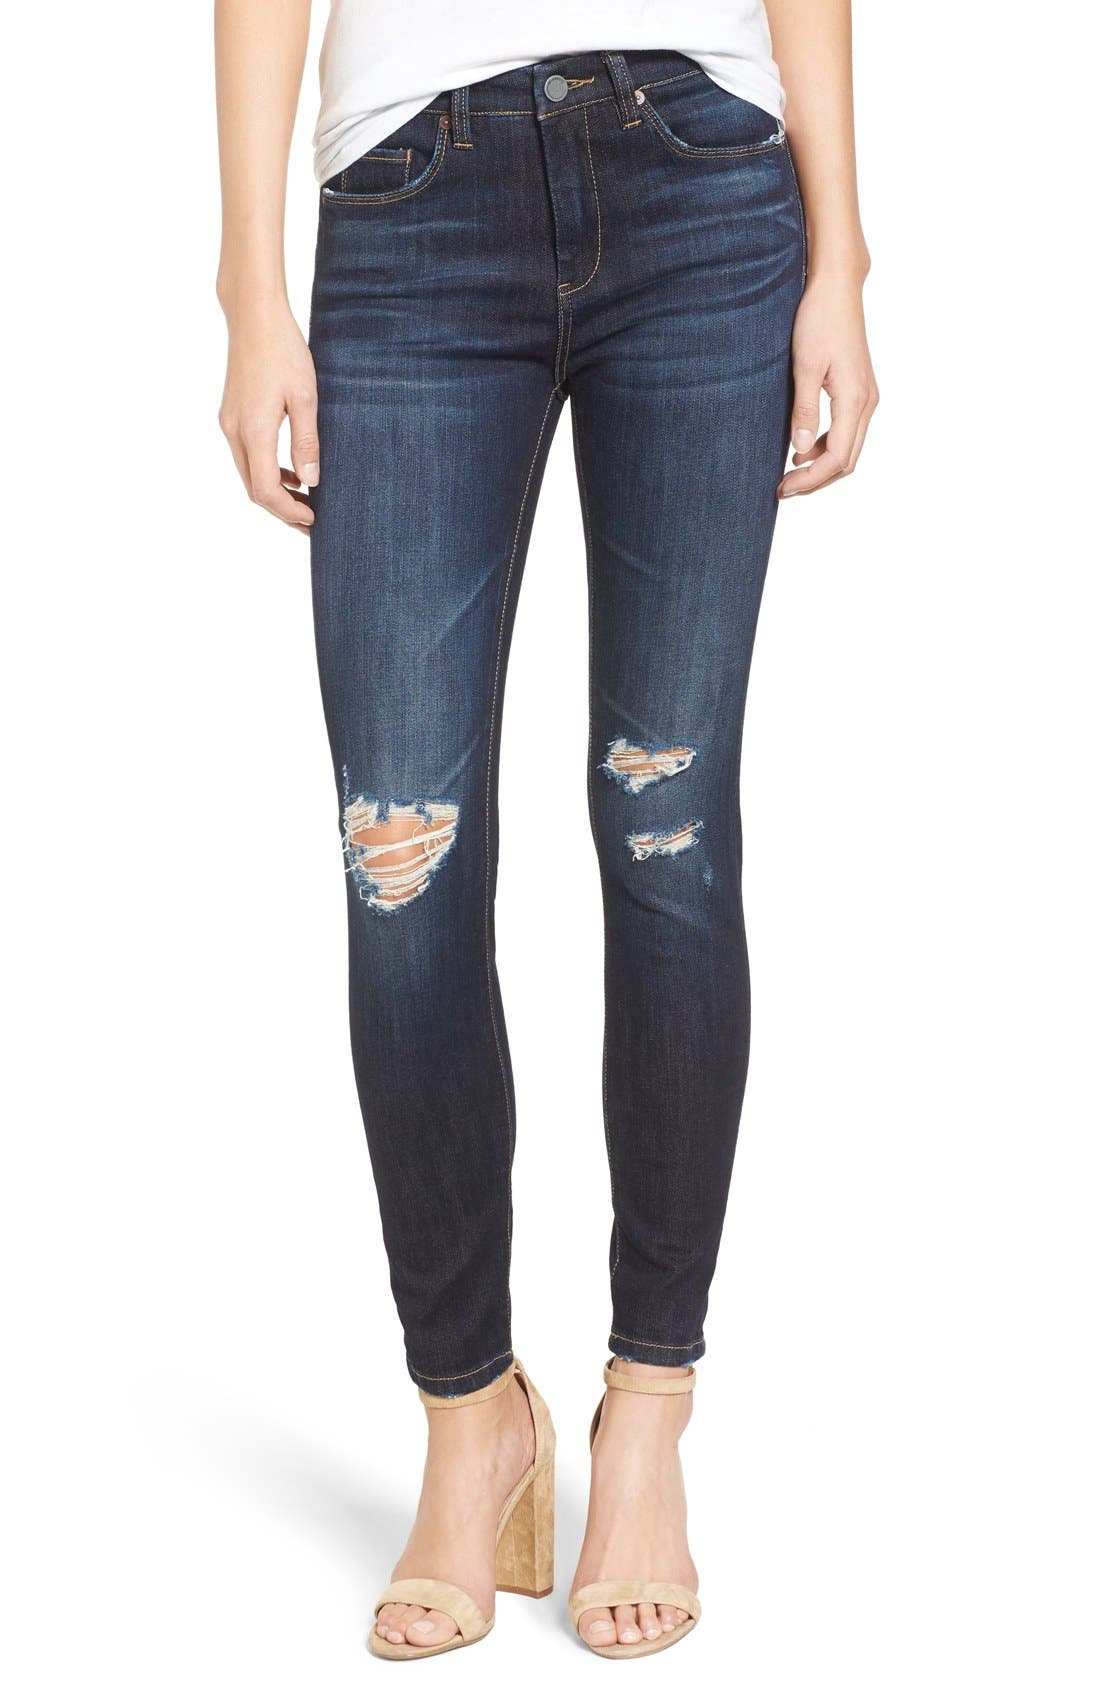 Alternate Image 1 Selected - BLANKNYC Distressed Skinny Jeans (Fully Loaded)